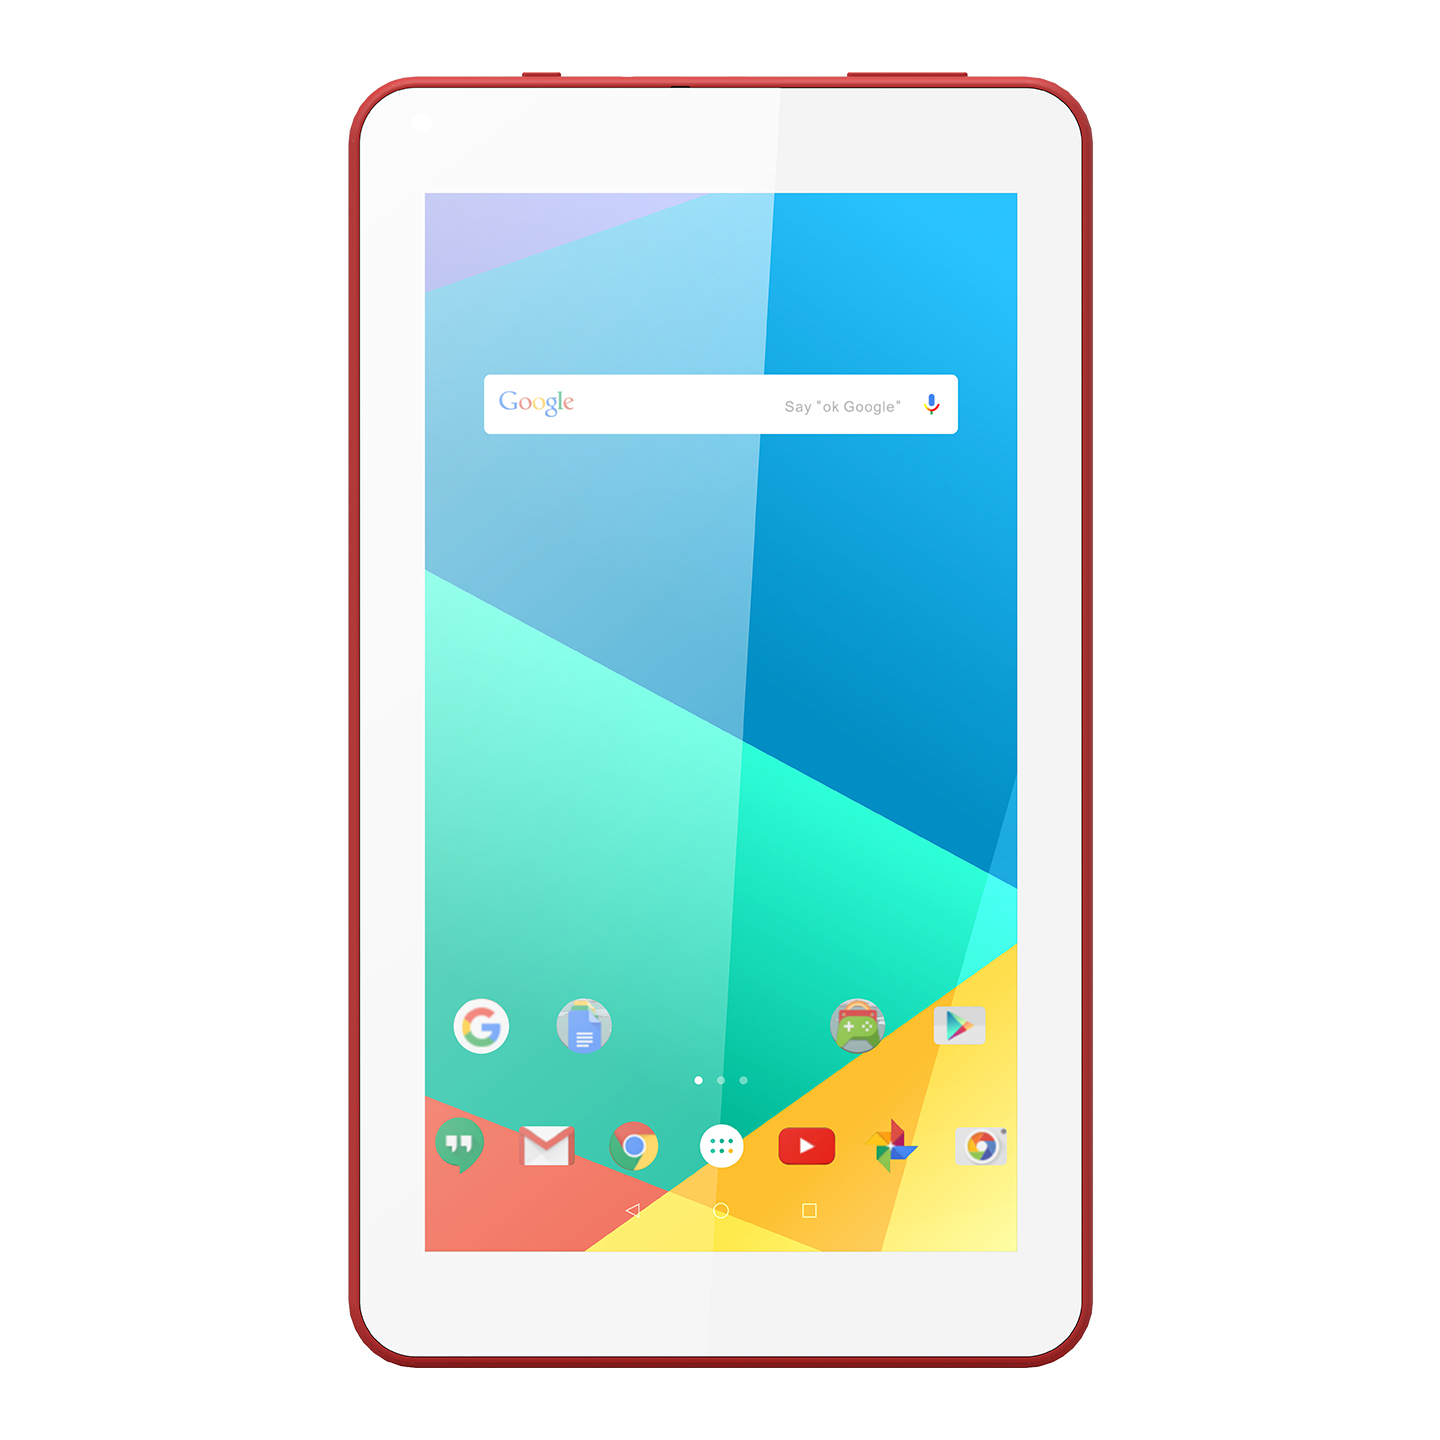 Everest WİNNER PRO EW-2021 Beyaz/Kırmızı Wifi+BT 2*Kamera 7 LCD Ekran A100 Quard Core 2GB+16GB And.10 OS Tablet PC